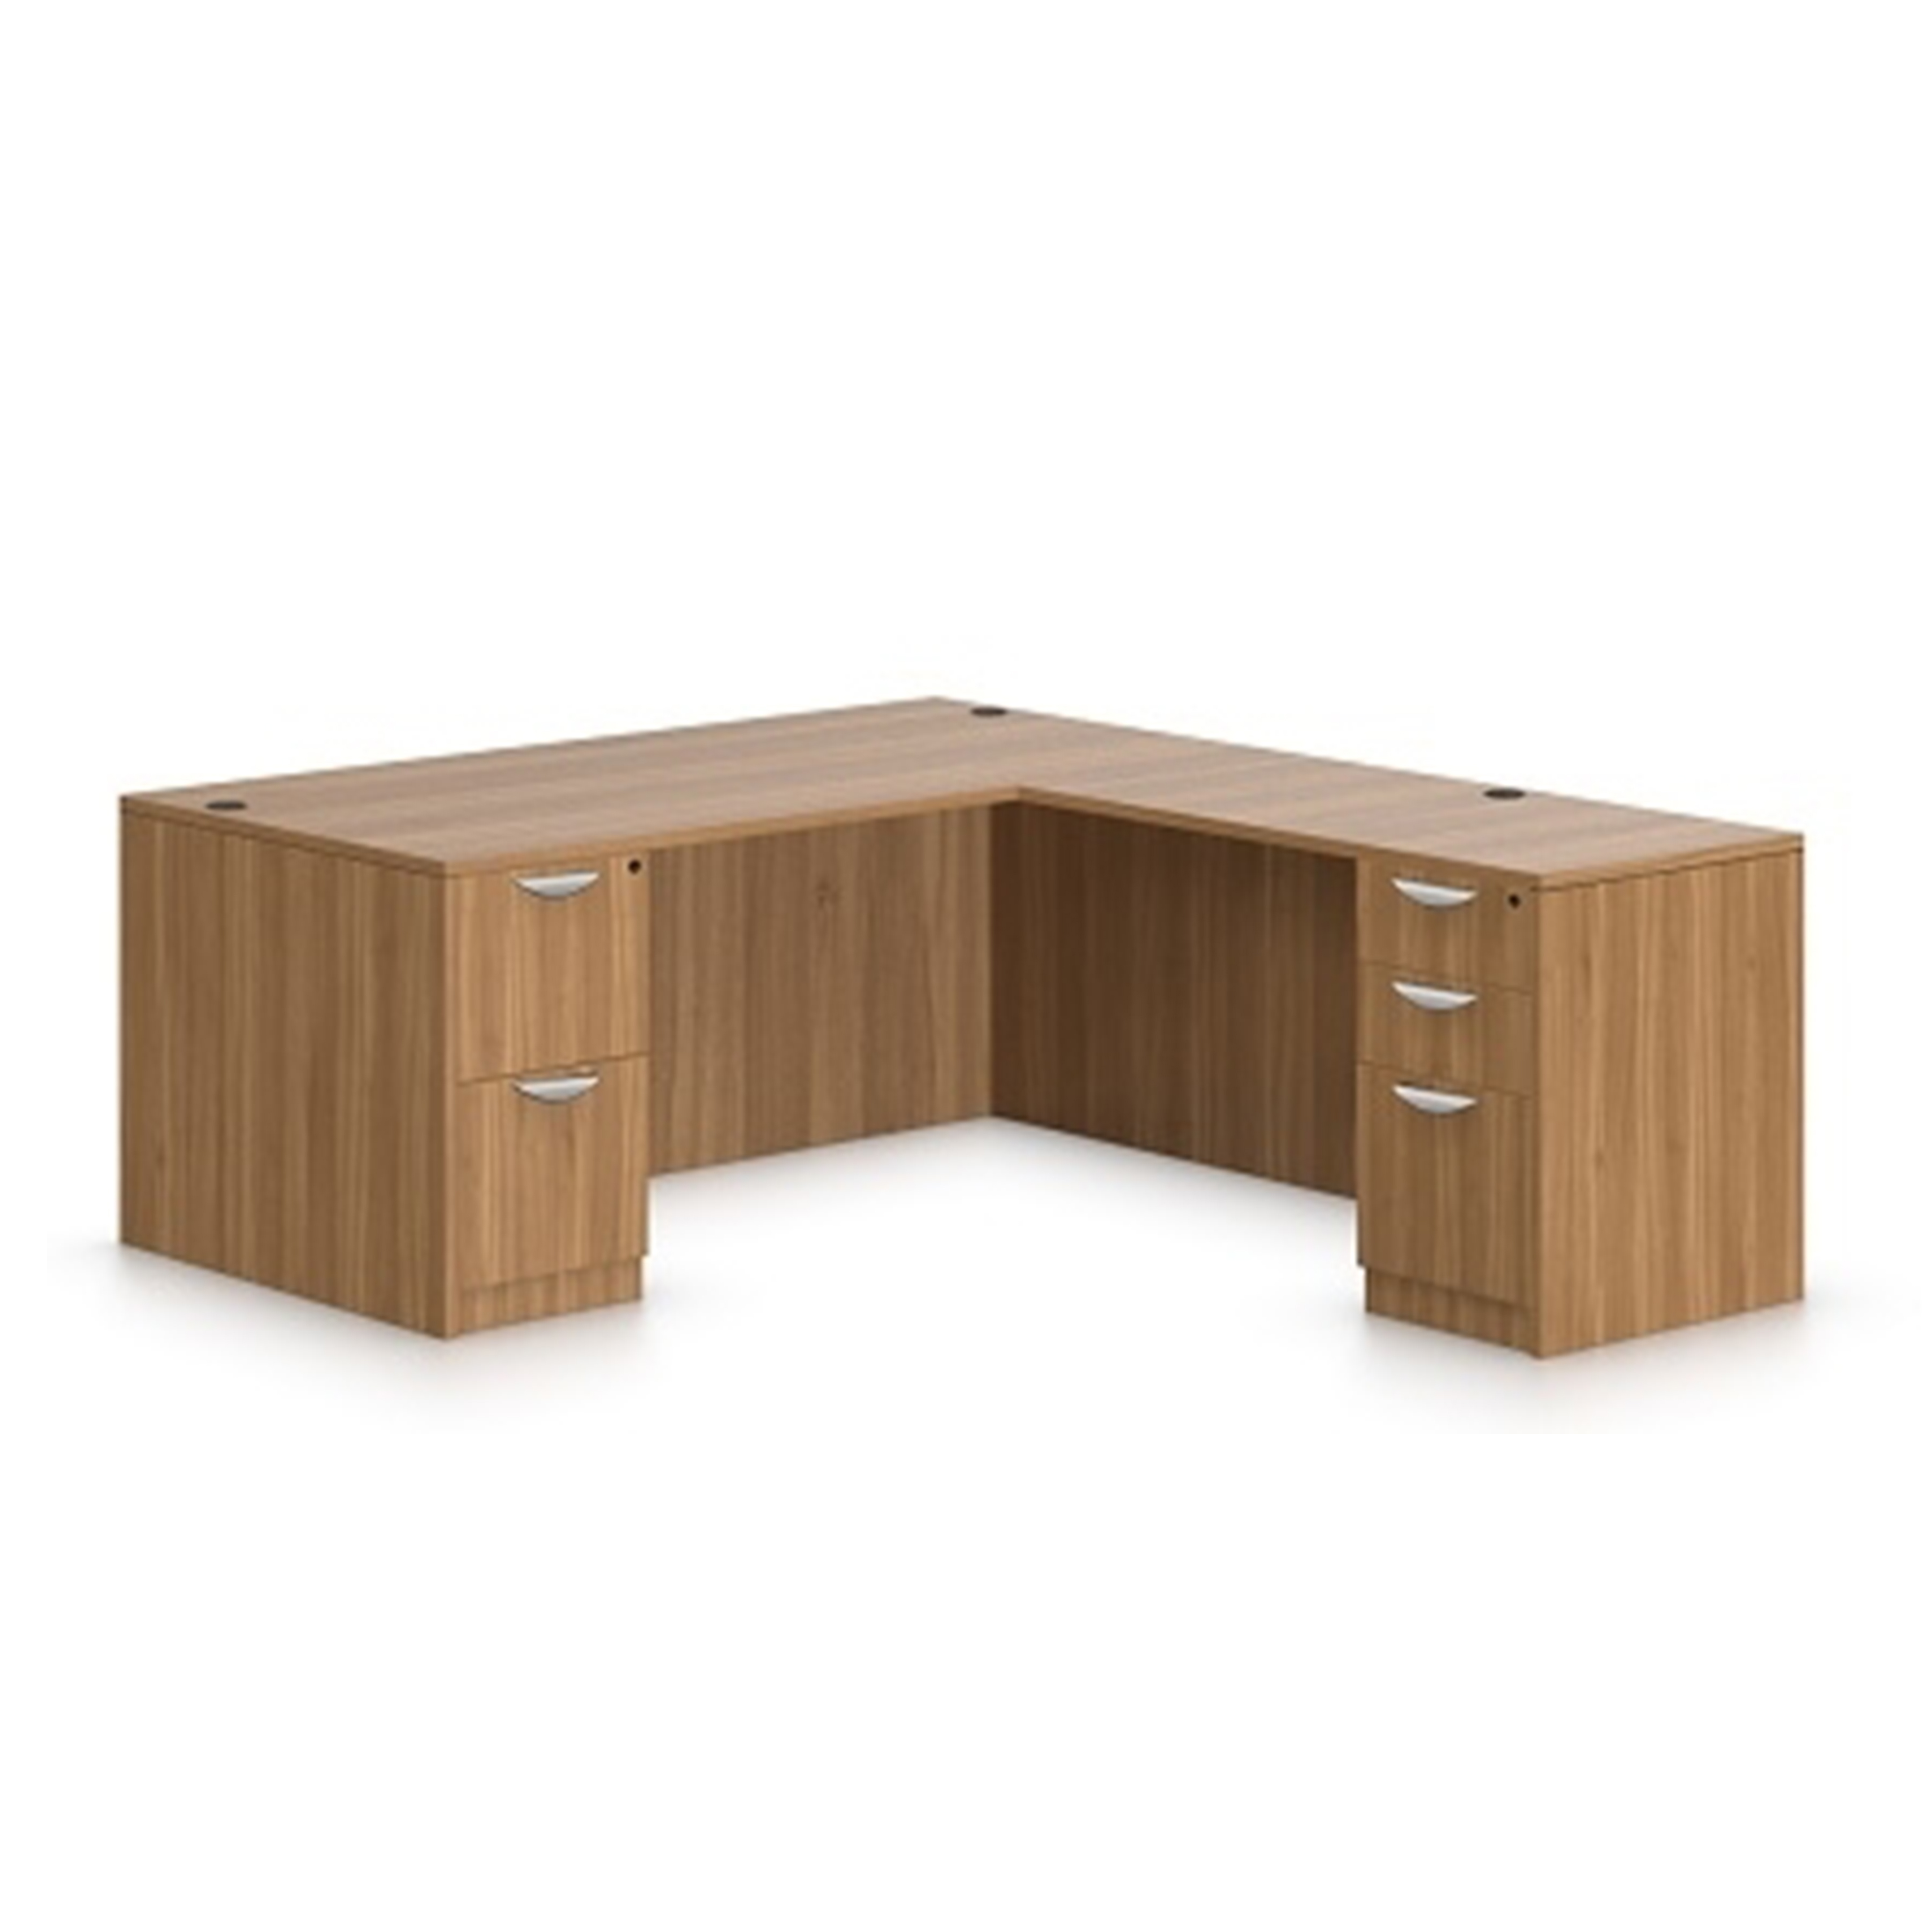 Otg Laminate L Shaped Desk With Drawers Used Office